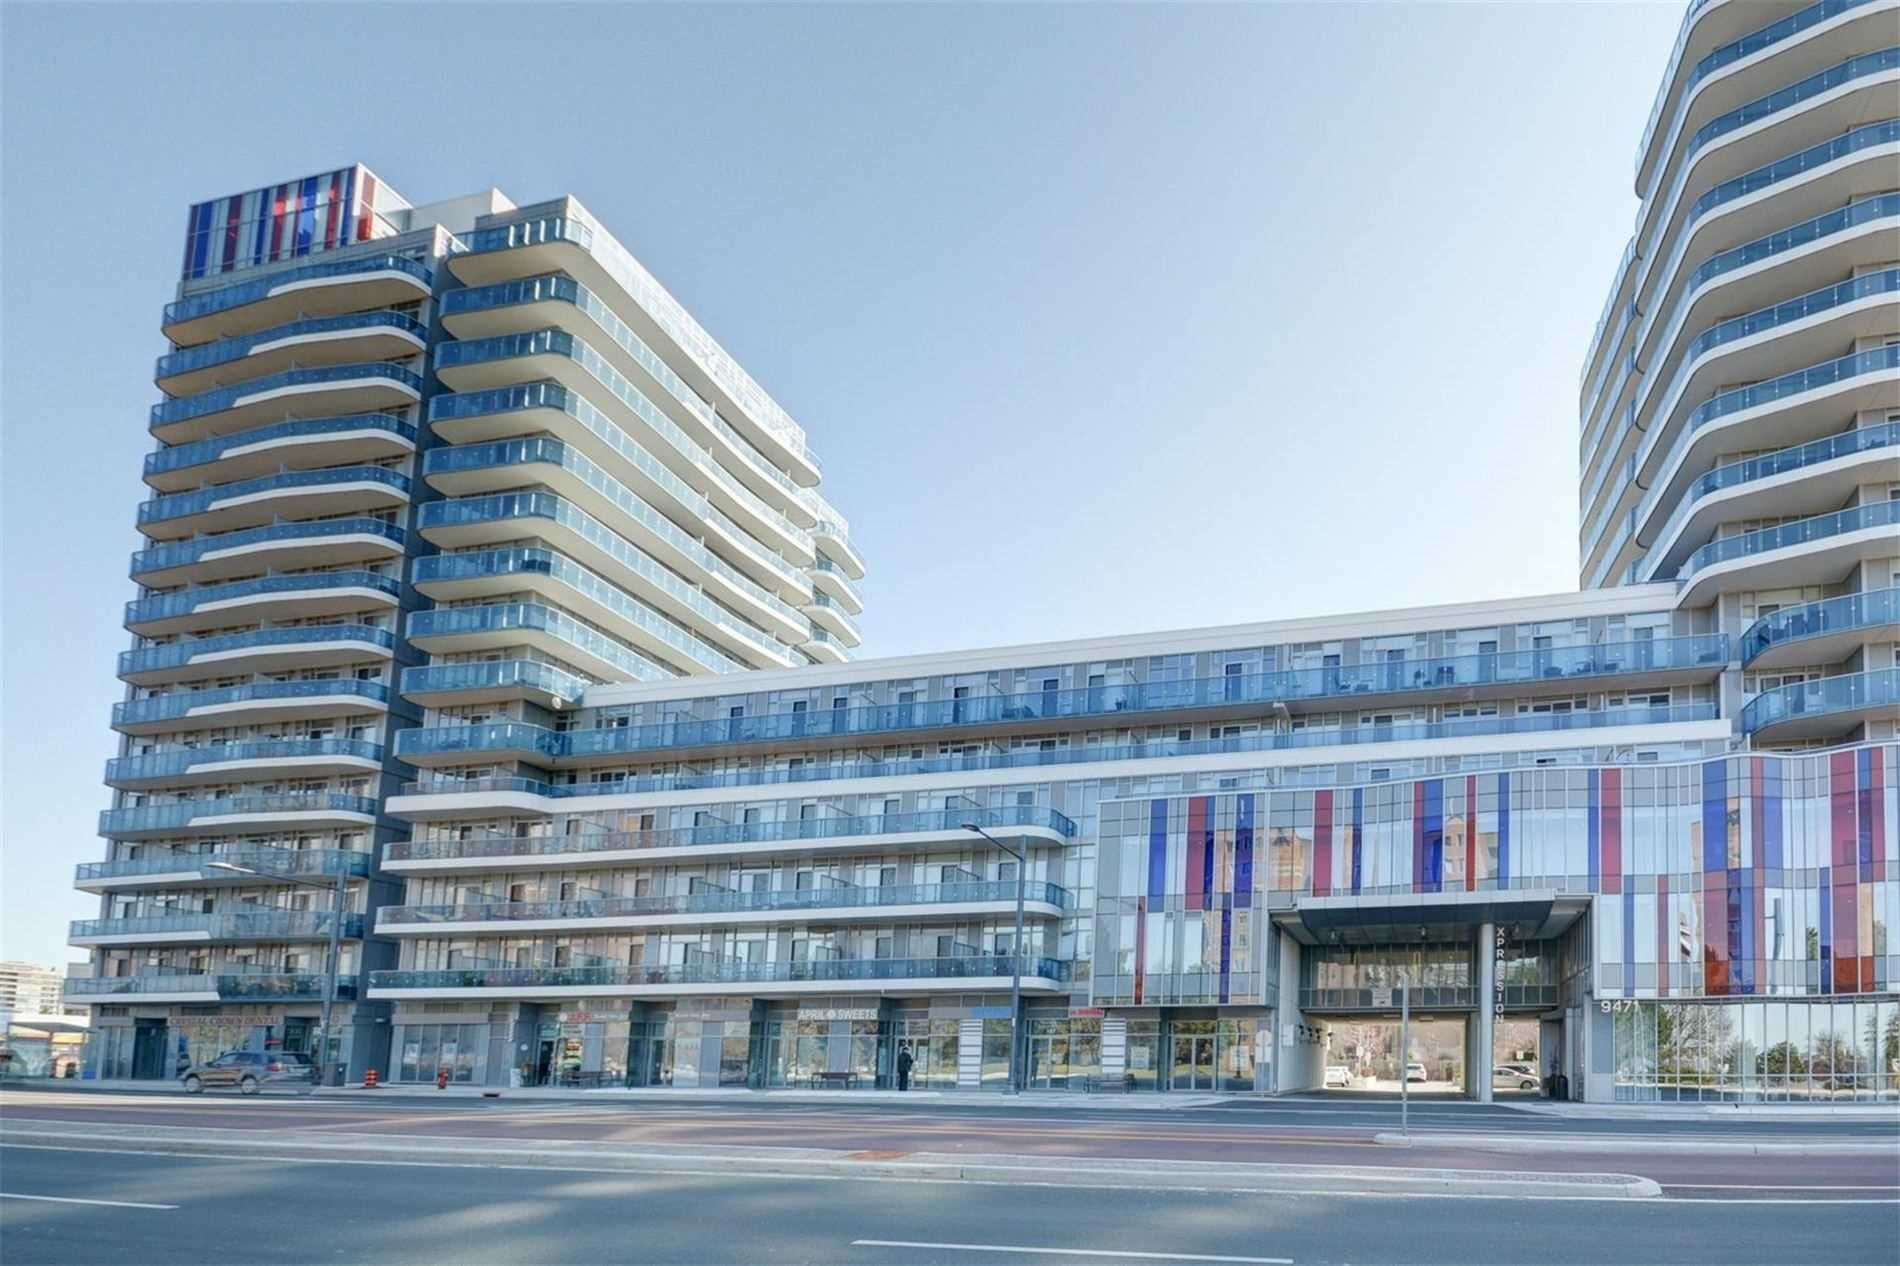 9471 Yonge St, unit 718 for sale in Toronto - image #1